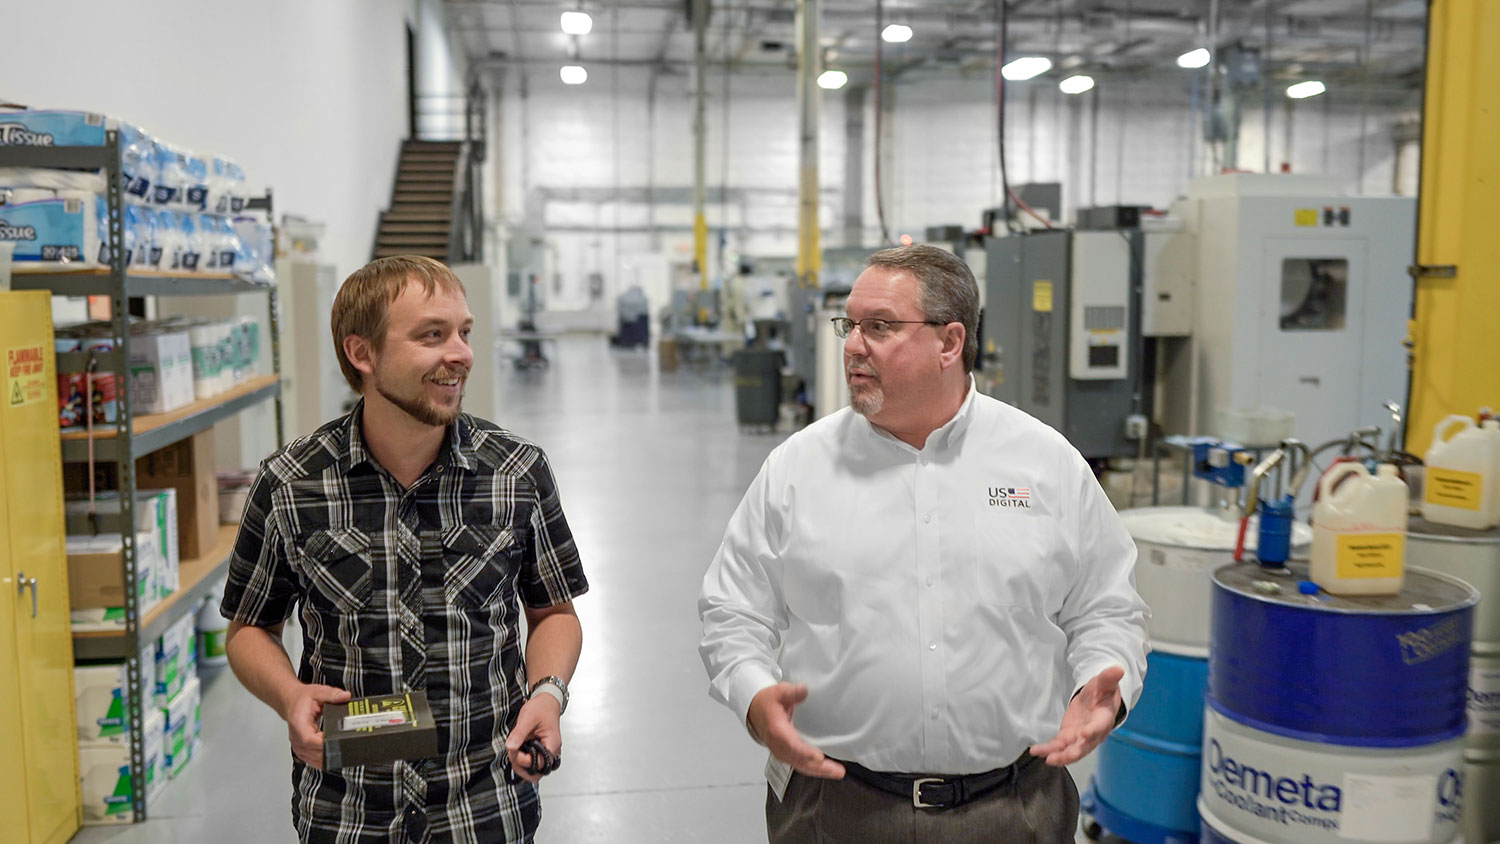 US Digital COO Neal Donowitz, right, and Technical Support Quality Representative Josh Morris discuss a product return in the US Digital plant.